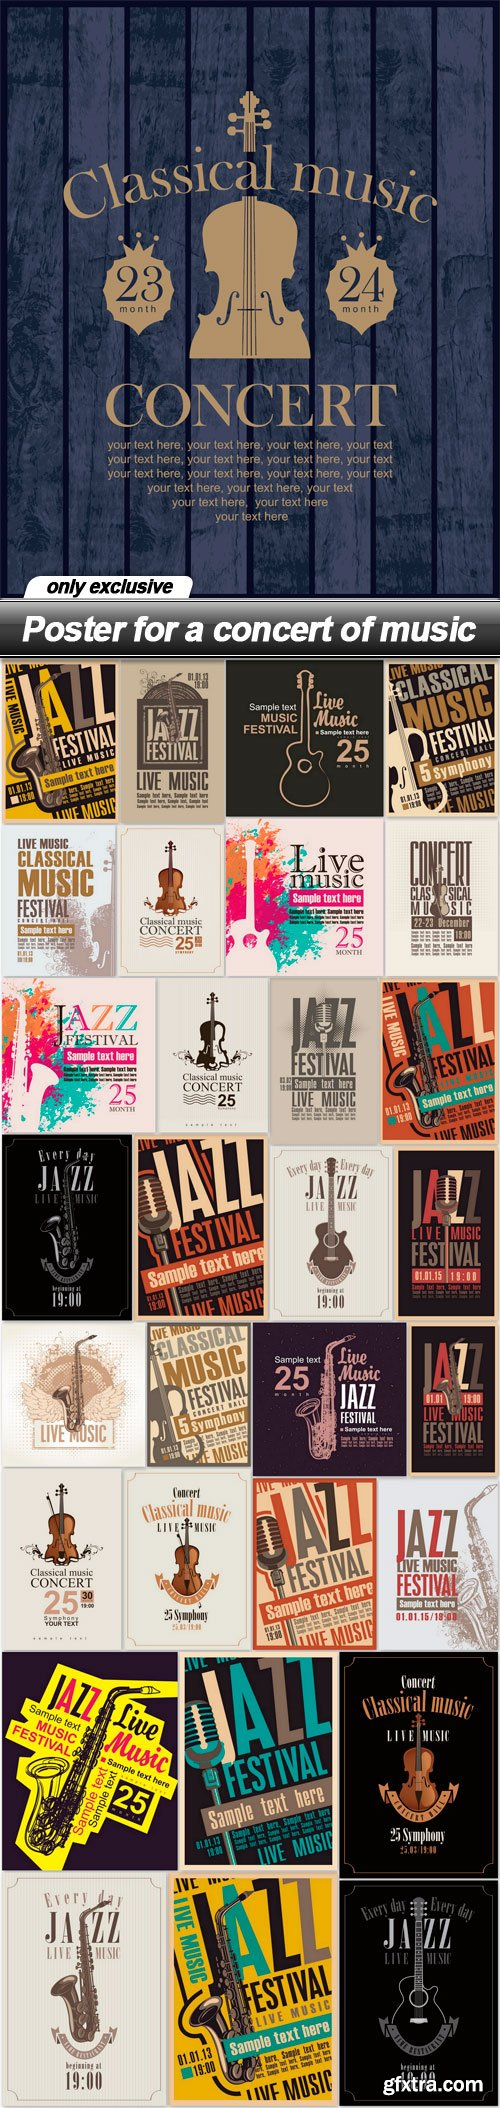 Poster for a concert of music - 31 EPS